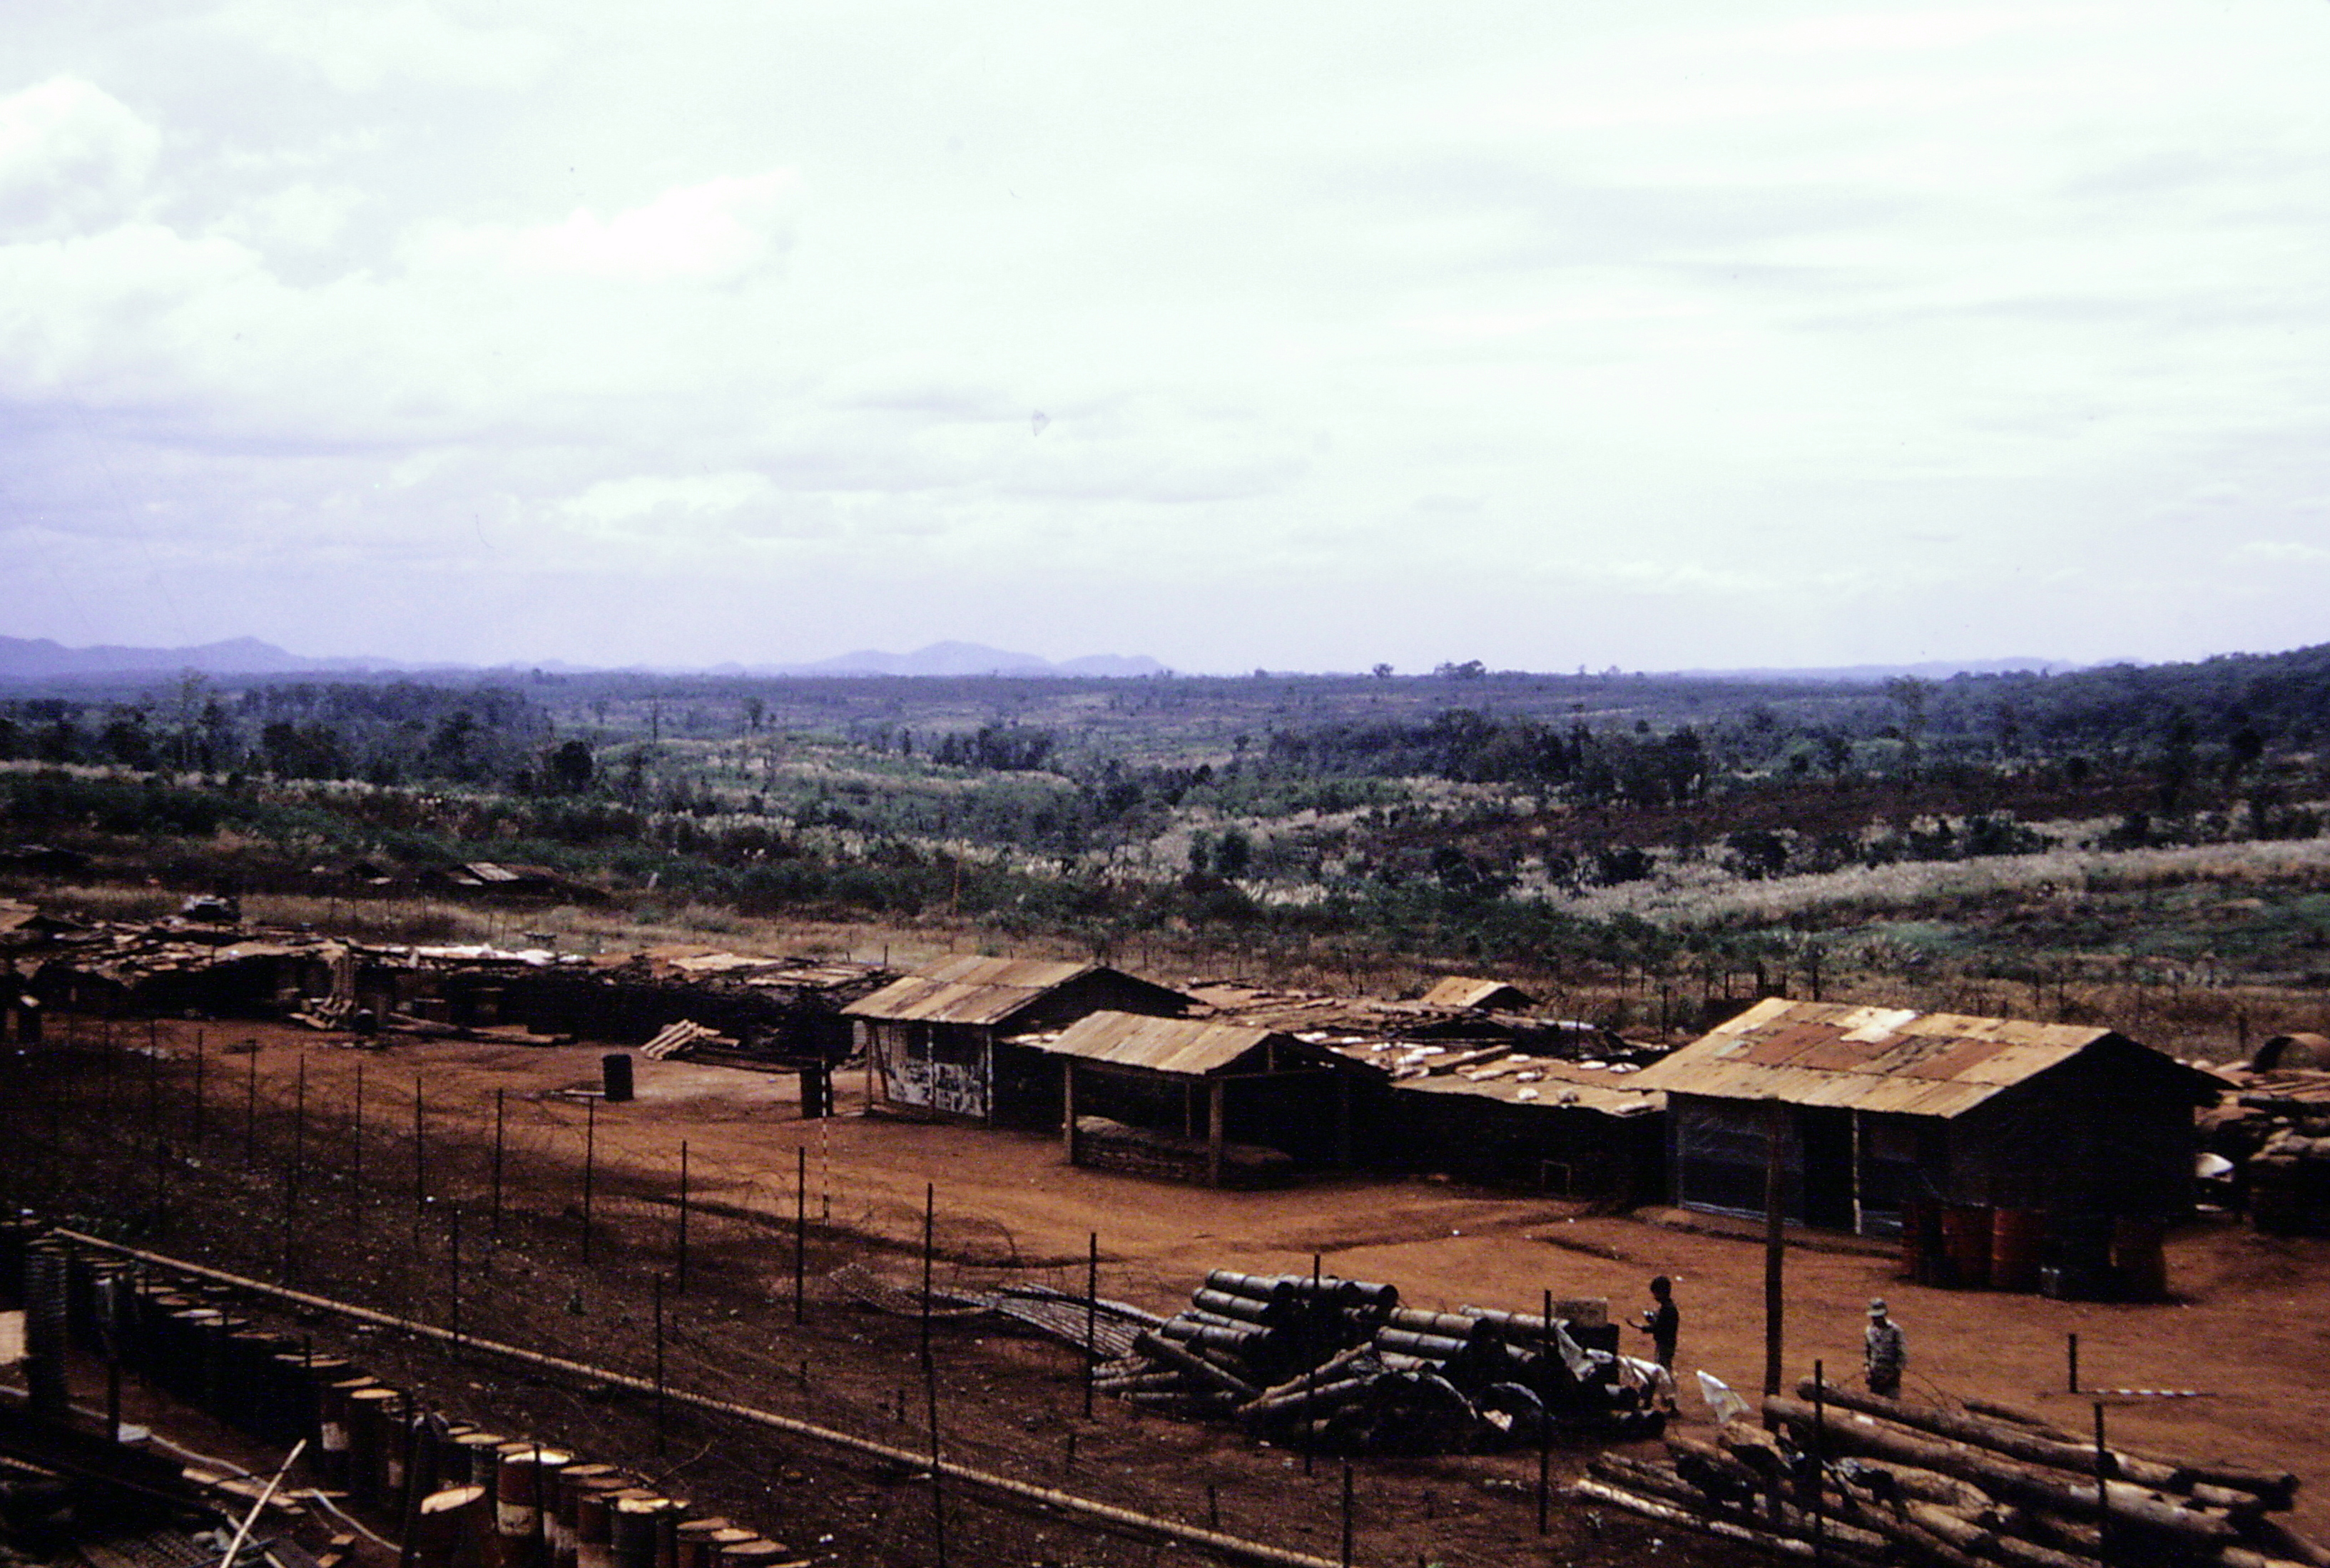 View of military camp.